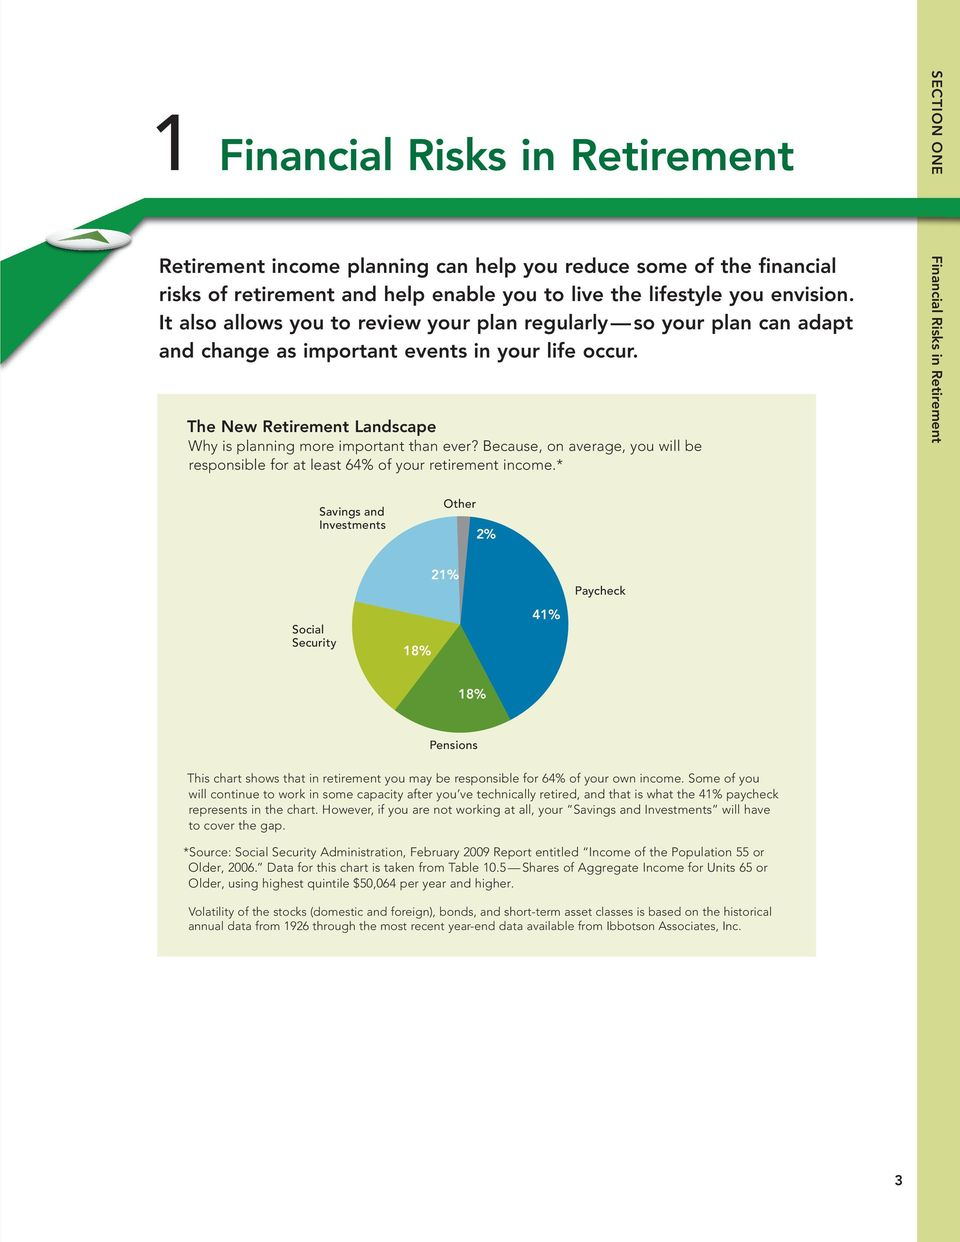 Because, on average, you will be responsible for at least 64% of your retirement income.